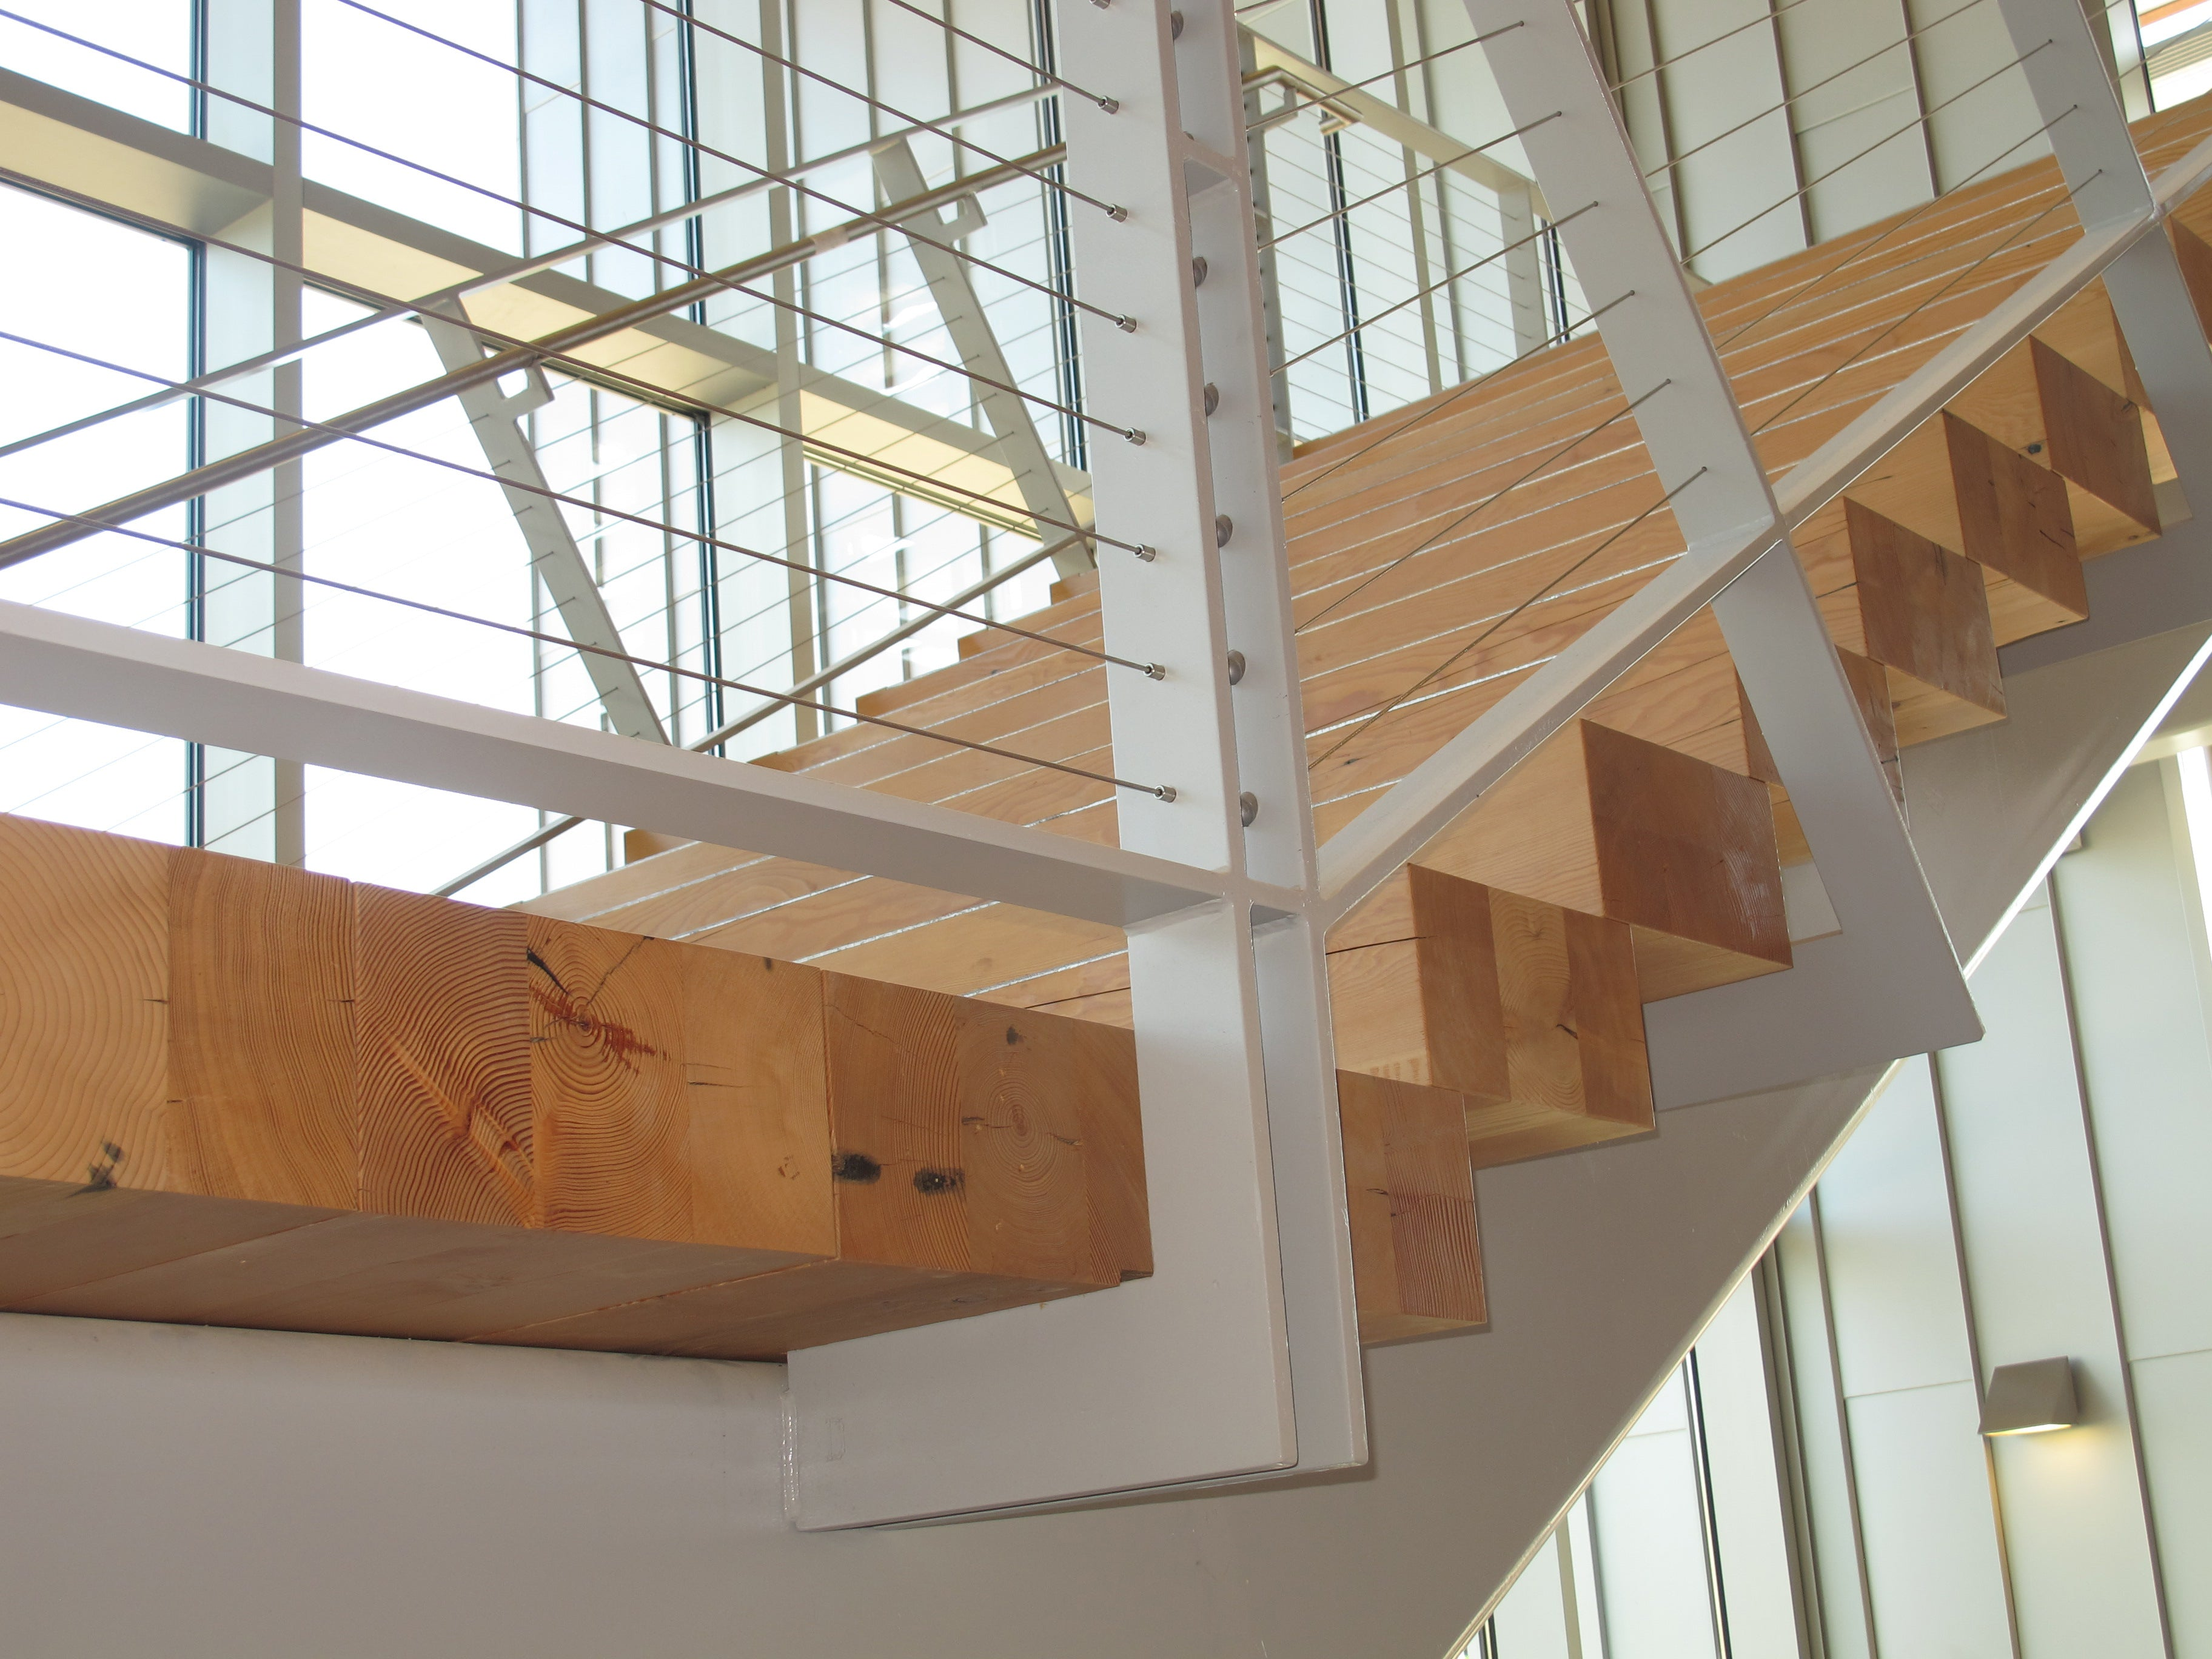 Reclaimed Douglas Fir treads and landings | Clover Pk Technical College, Lakewood, WA